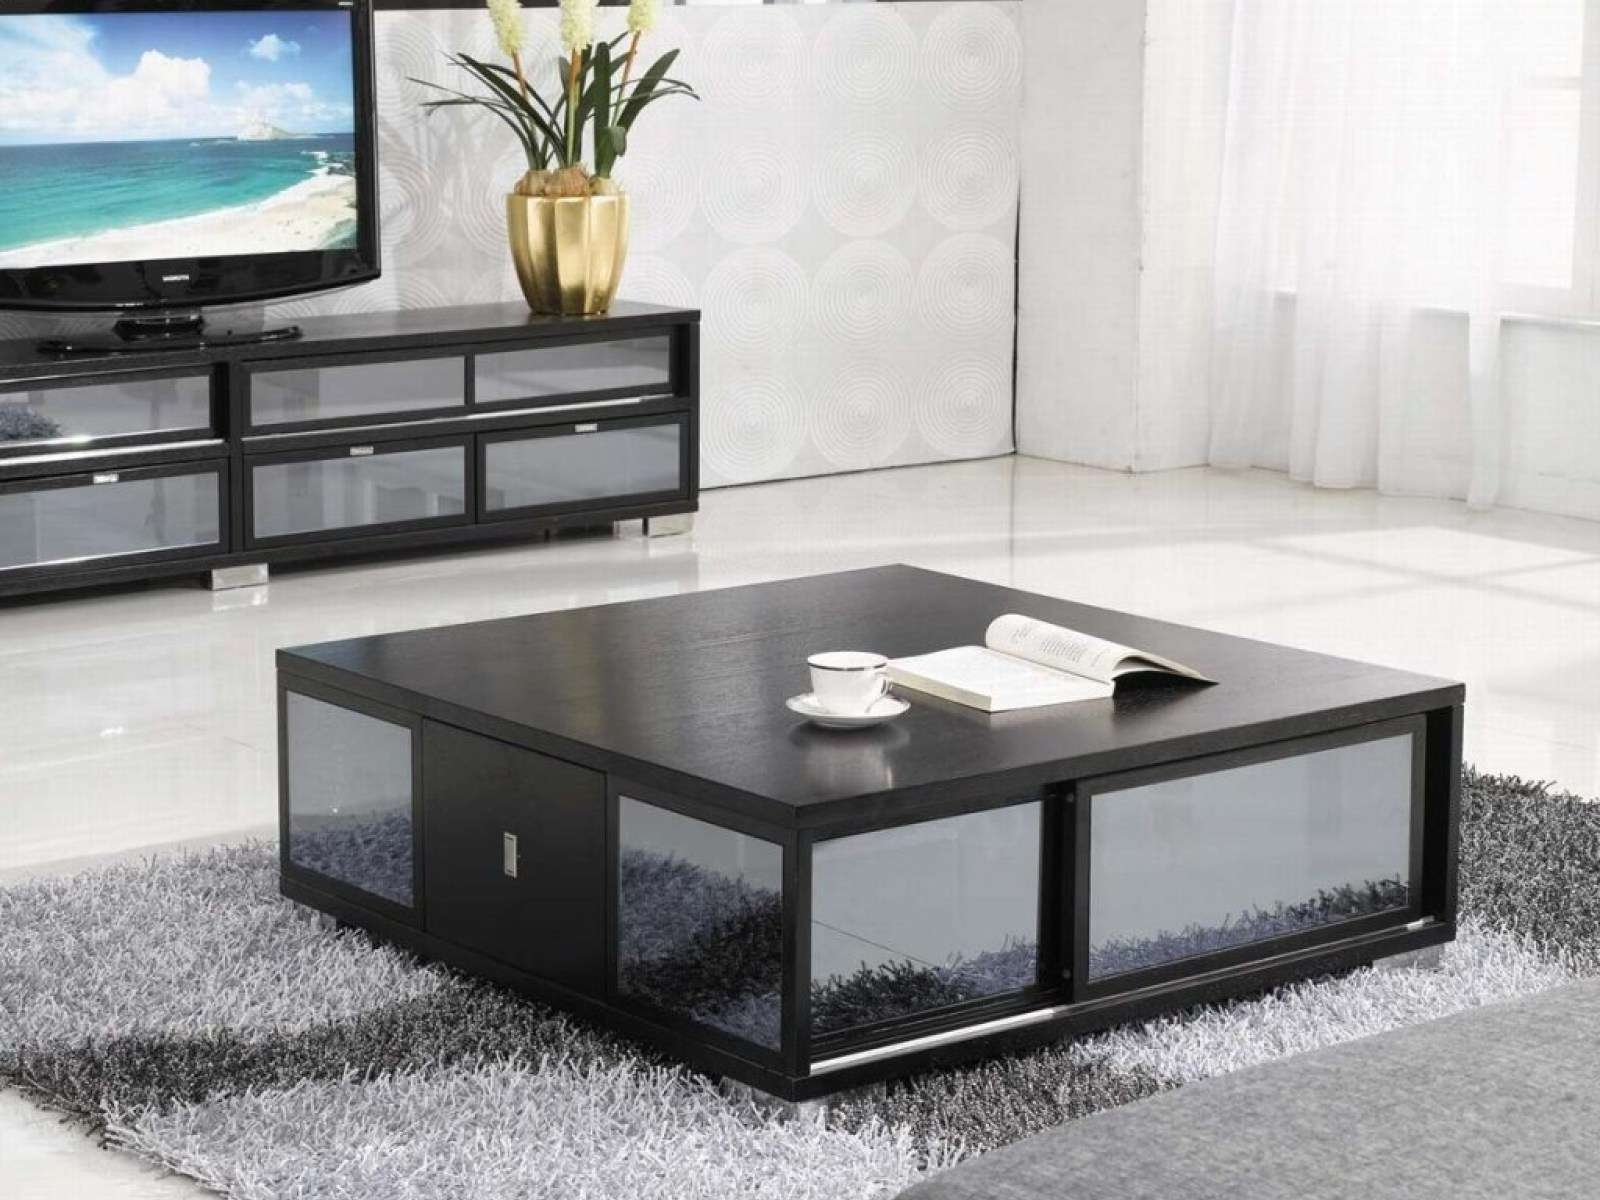 Trendy Large Square Coffee Table With Storage Regarding Coffee Tables : Cream Square Coffee Table Modern End Tables Black (View 18 of 20)